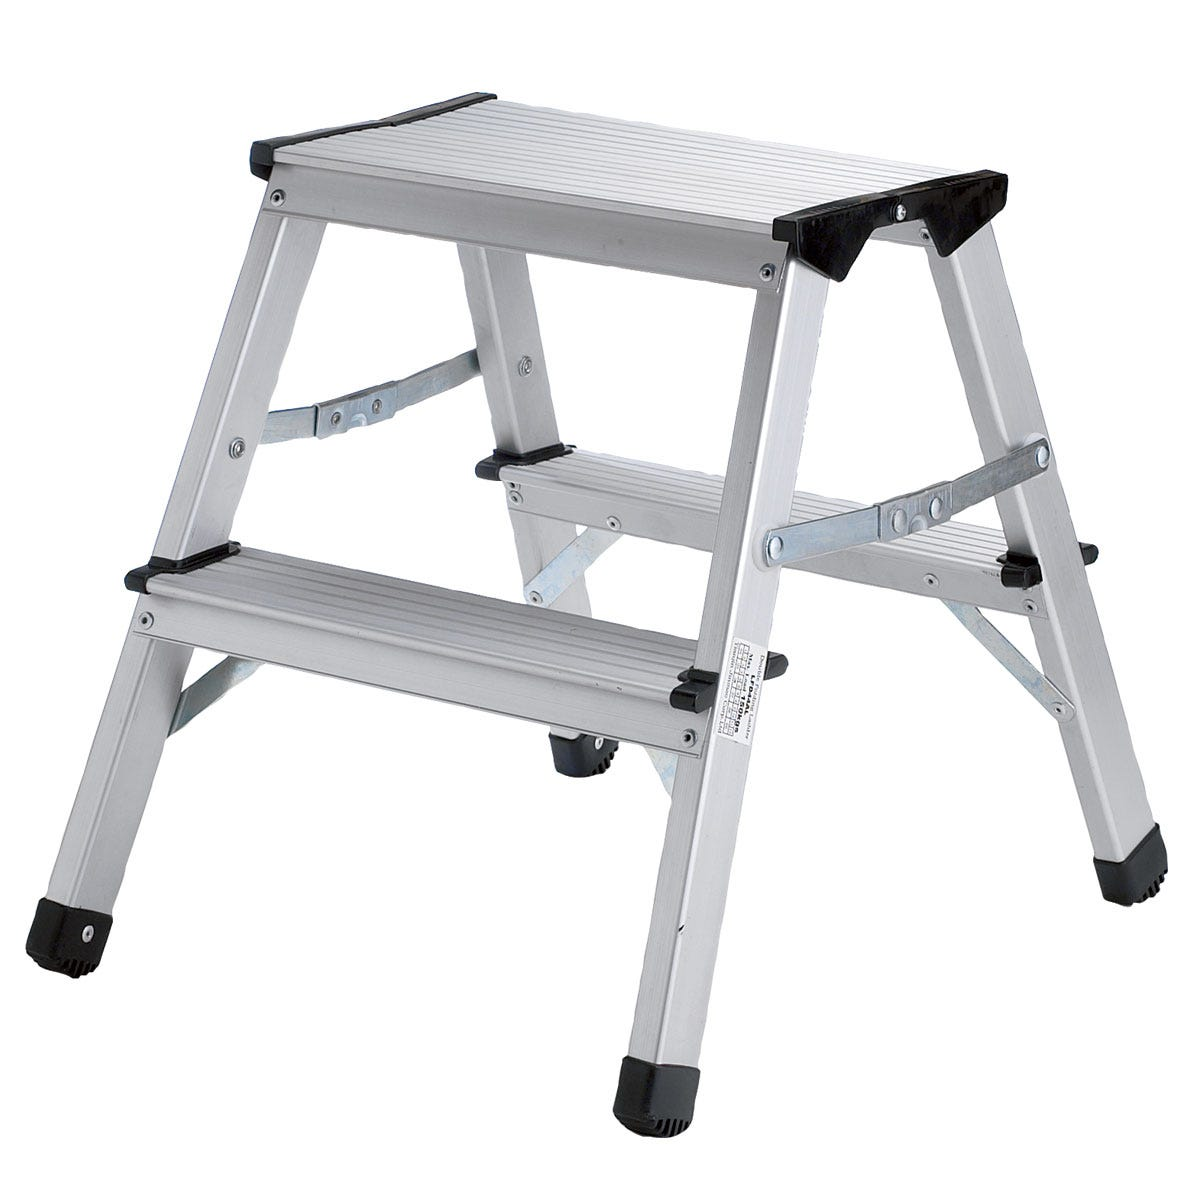 Aeroladder Aviation Step Stool Two Step From Sporty S